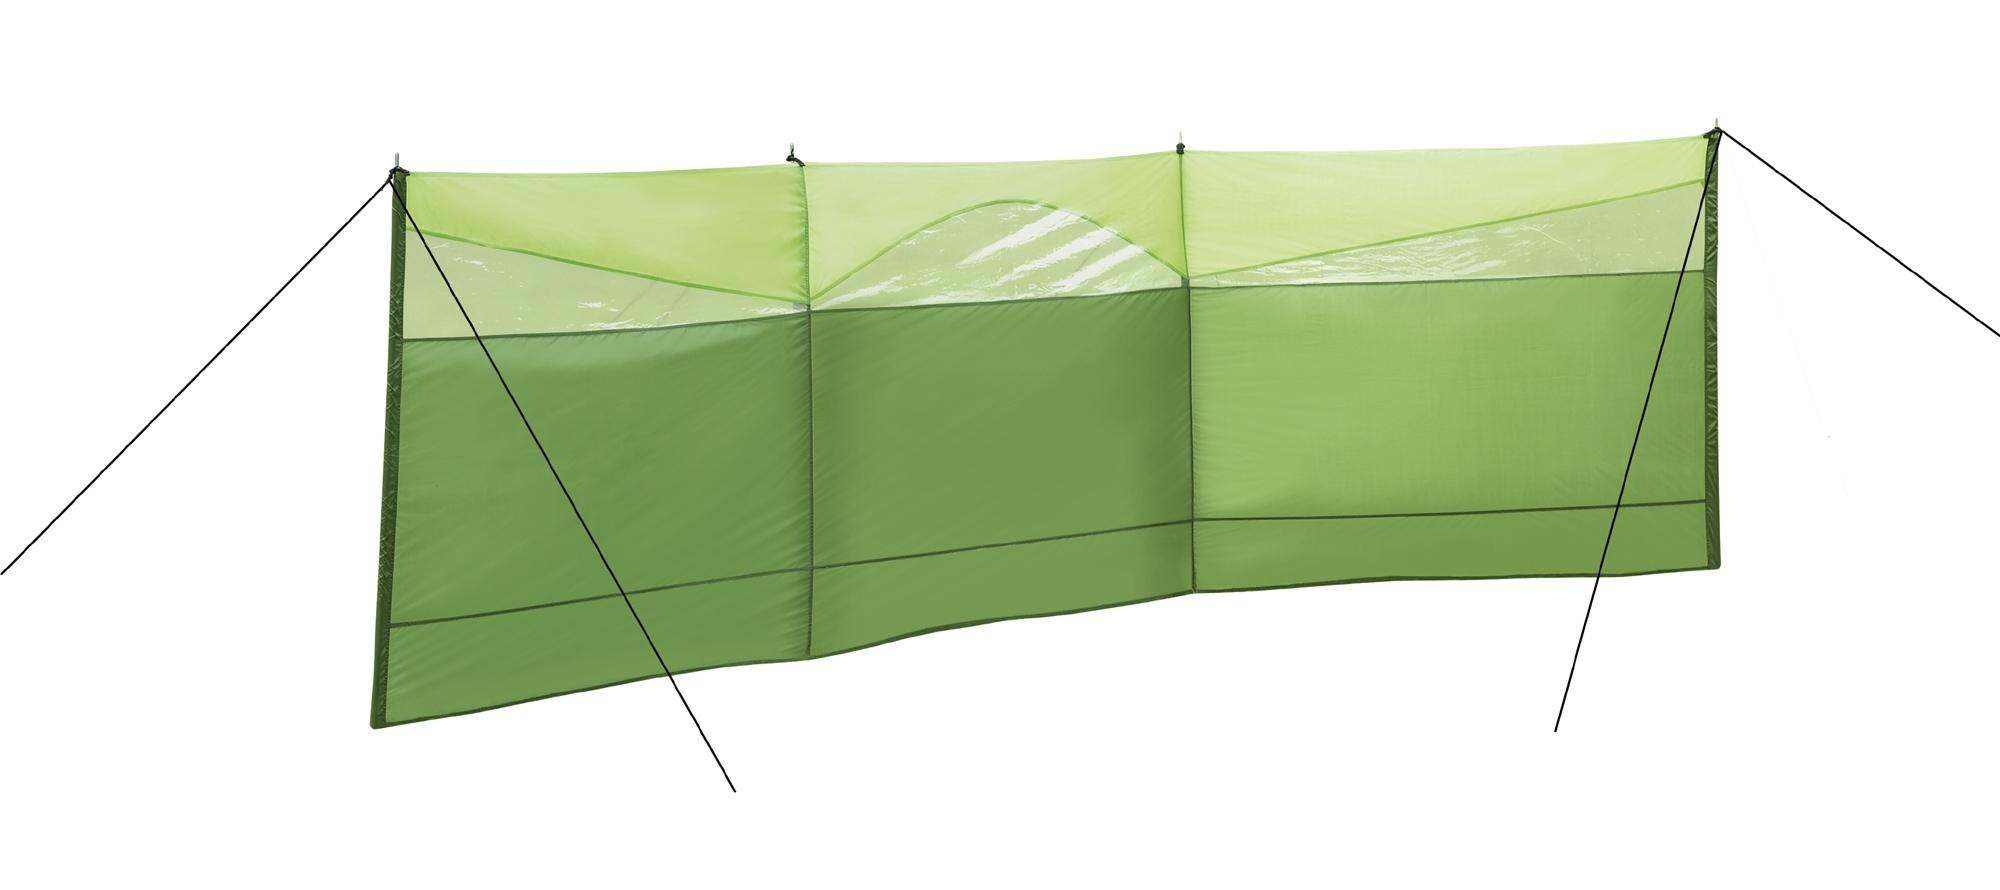 Details about Urban Escape Camping Wind Break Green 5m Long 1 4m High Guy  Ropes Pegs Shelter